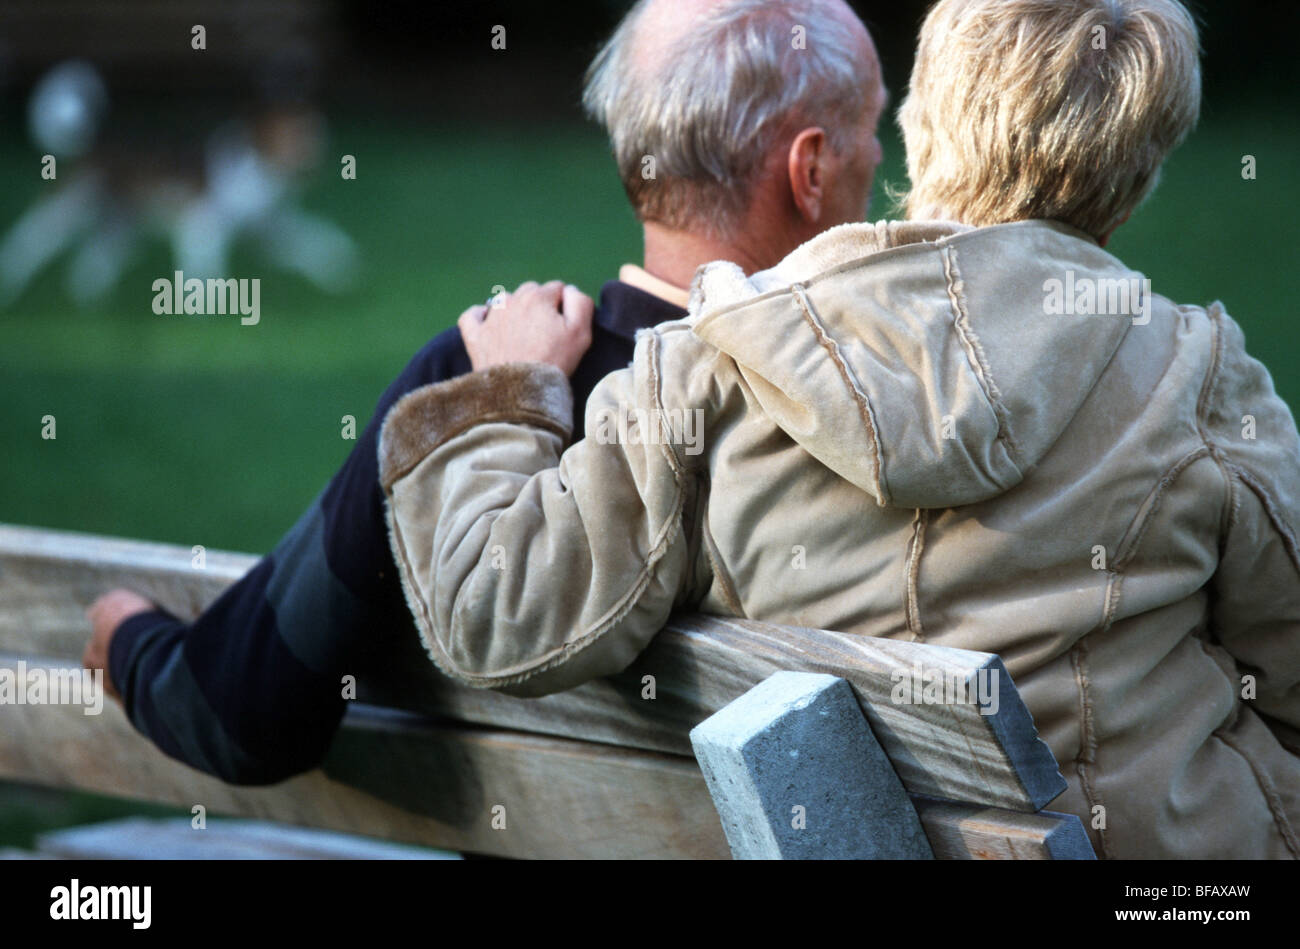 Worried pensioner couple sit on park bench, consolation, back view, woman hand on shoulder elderly man Stock Photo